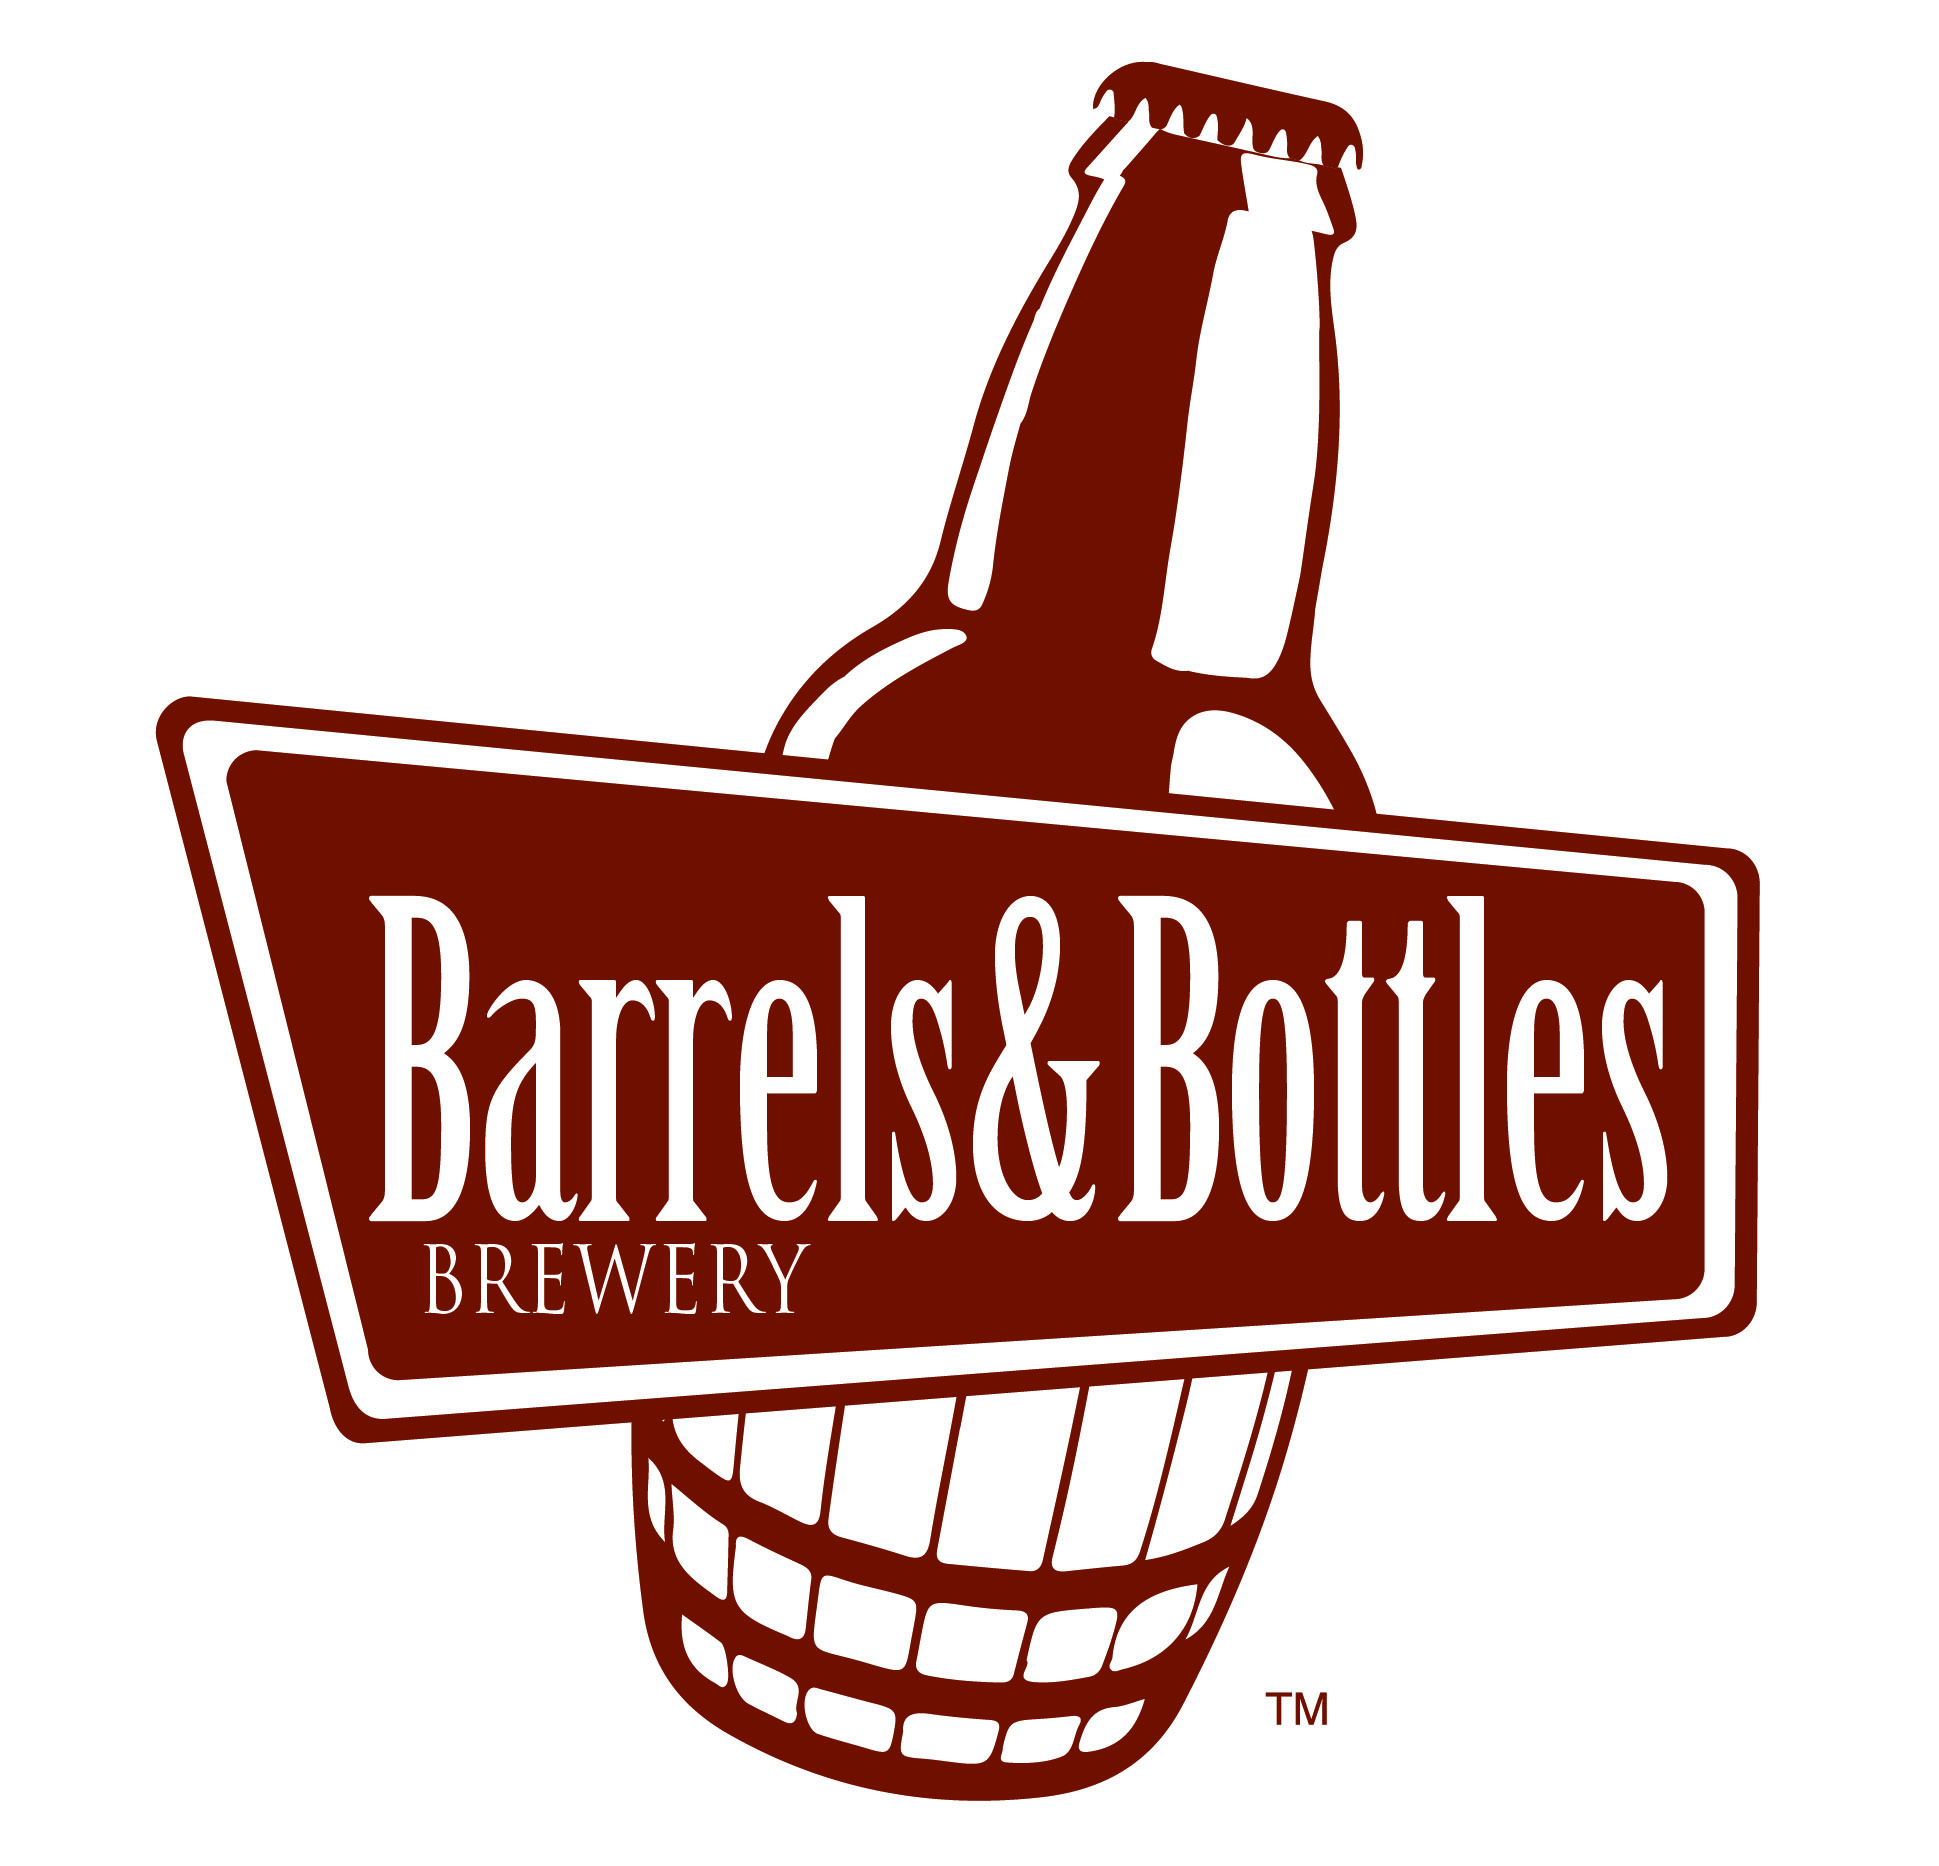 Barrels & Bottles logo